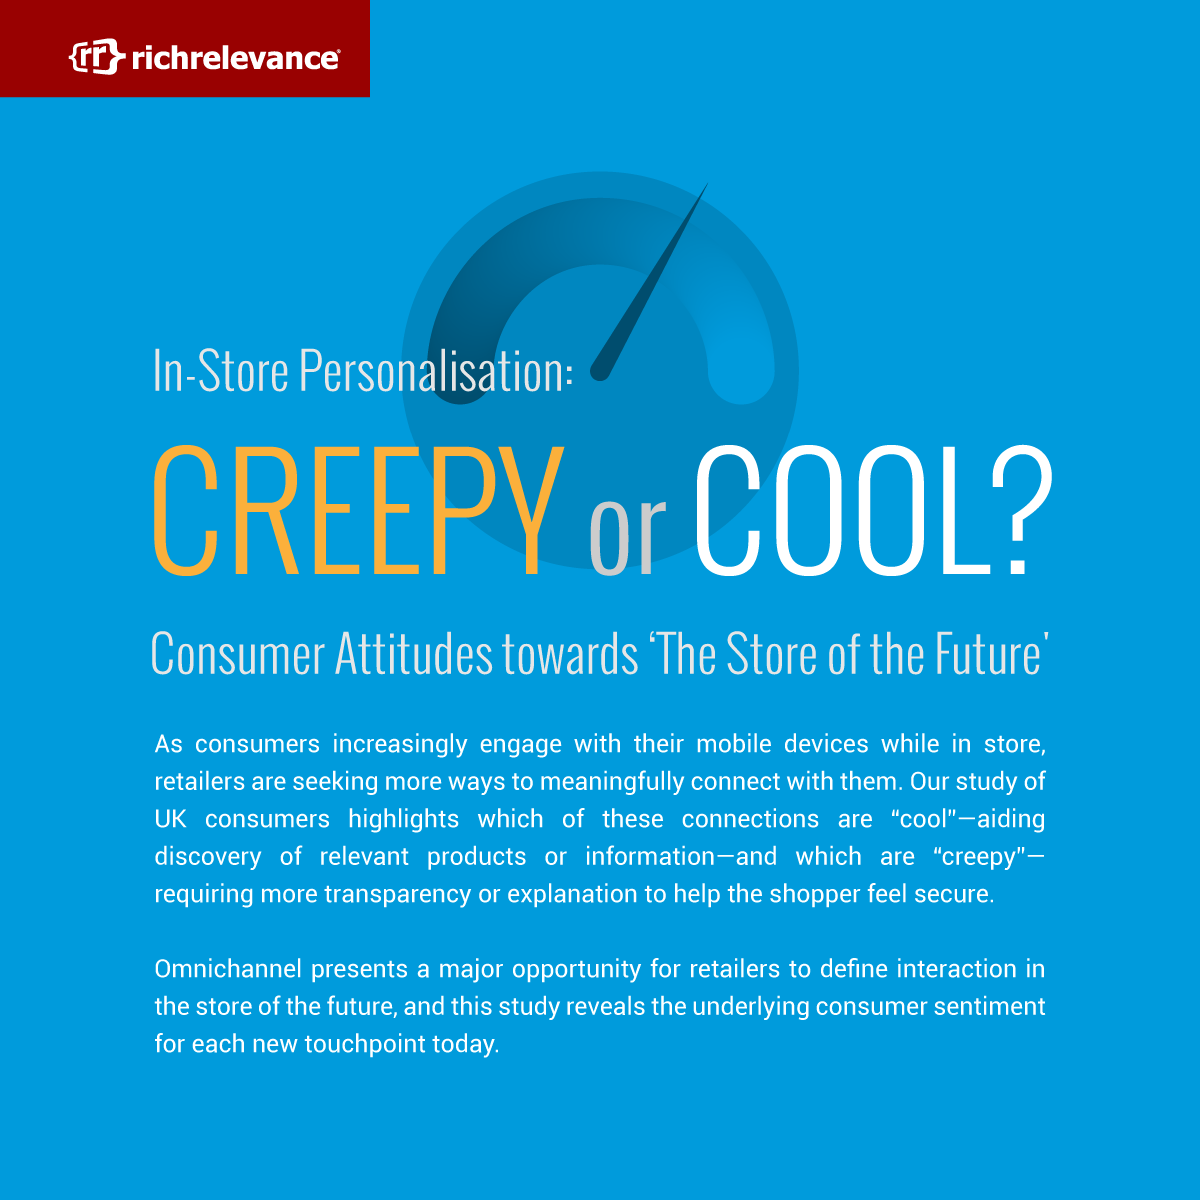 RichRelevance Infographic - Creepy or Cool?-01